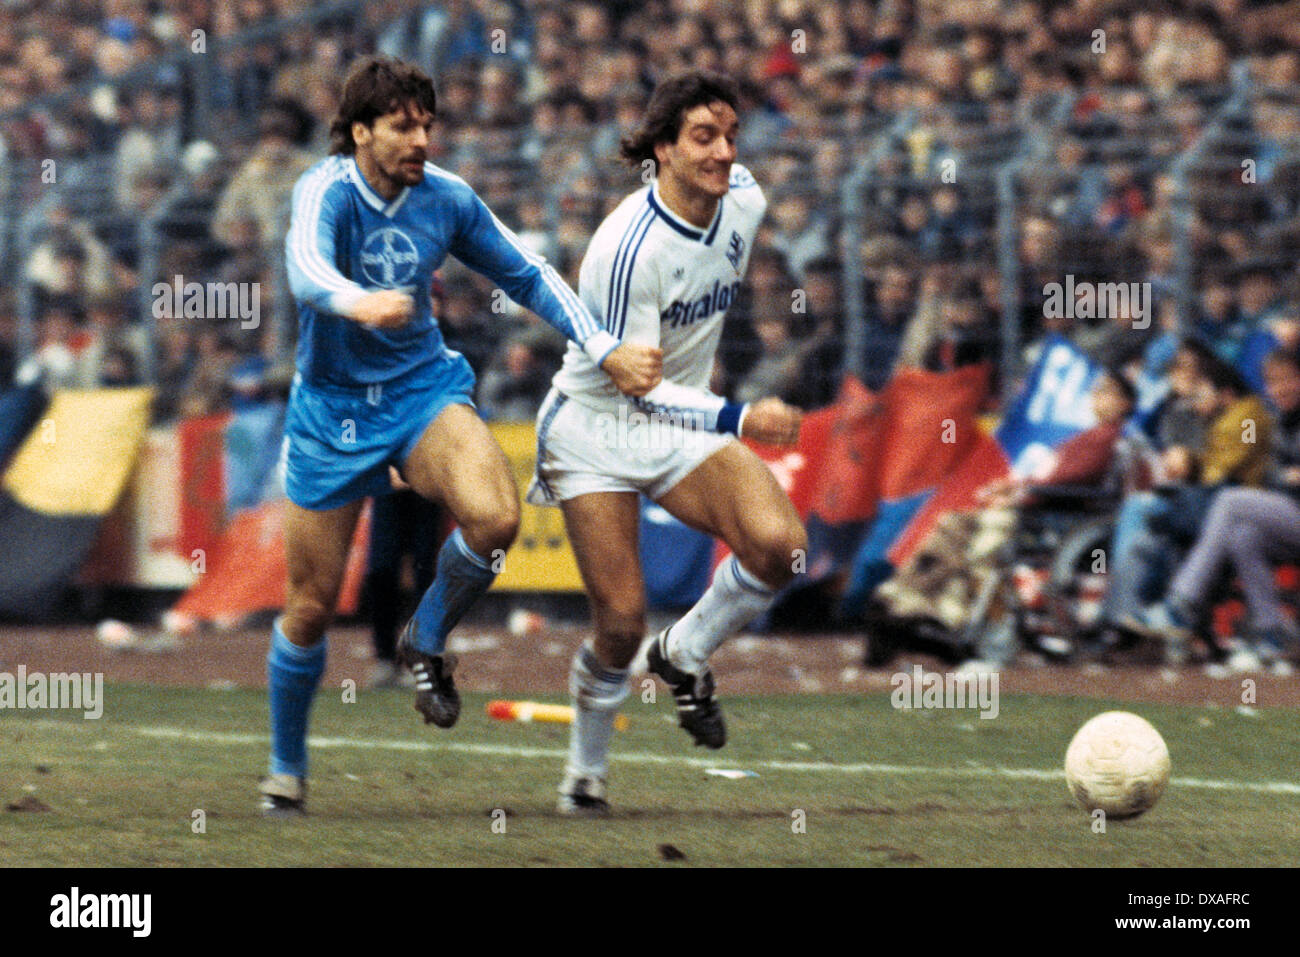 football, Bundesliga, 1984/1985, Grotenburg Stadium, FC Bayer 05 Uerdingen versus SV Waldhof Mannheim 2:2, scene of the match, Bernd Klotz (SVW) in ball possession, left Ludger van de Loo (Bayer) - Stock Image